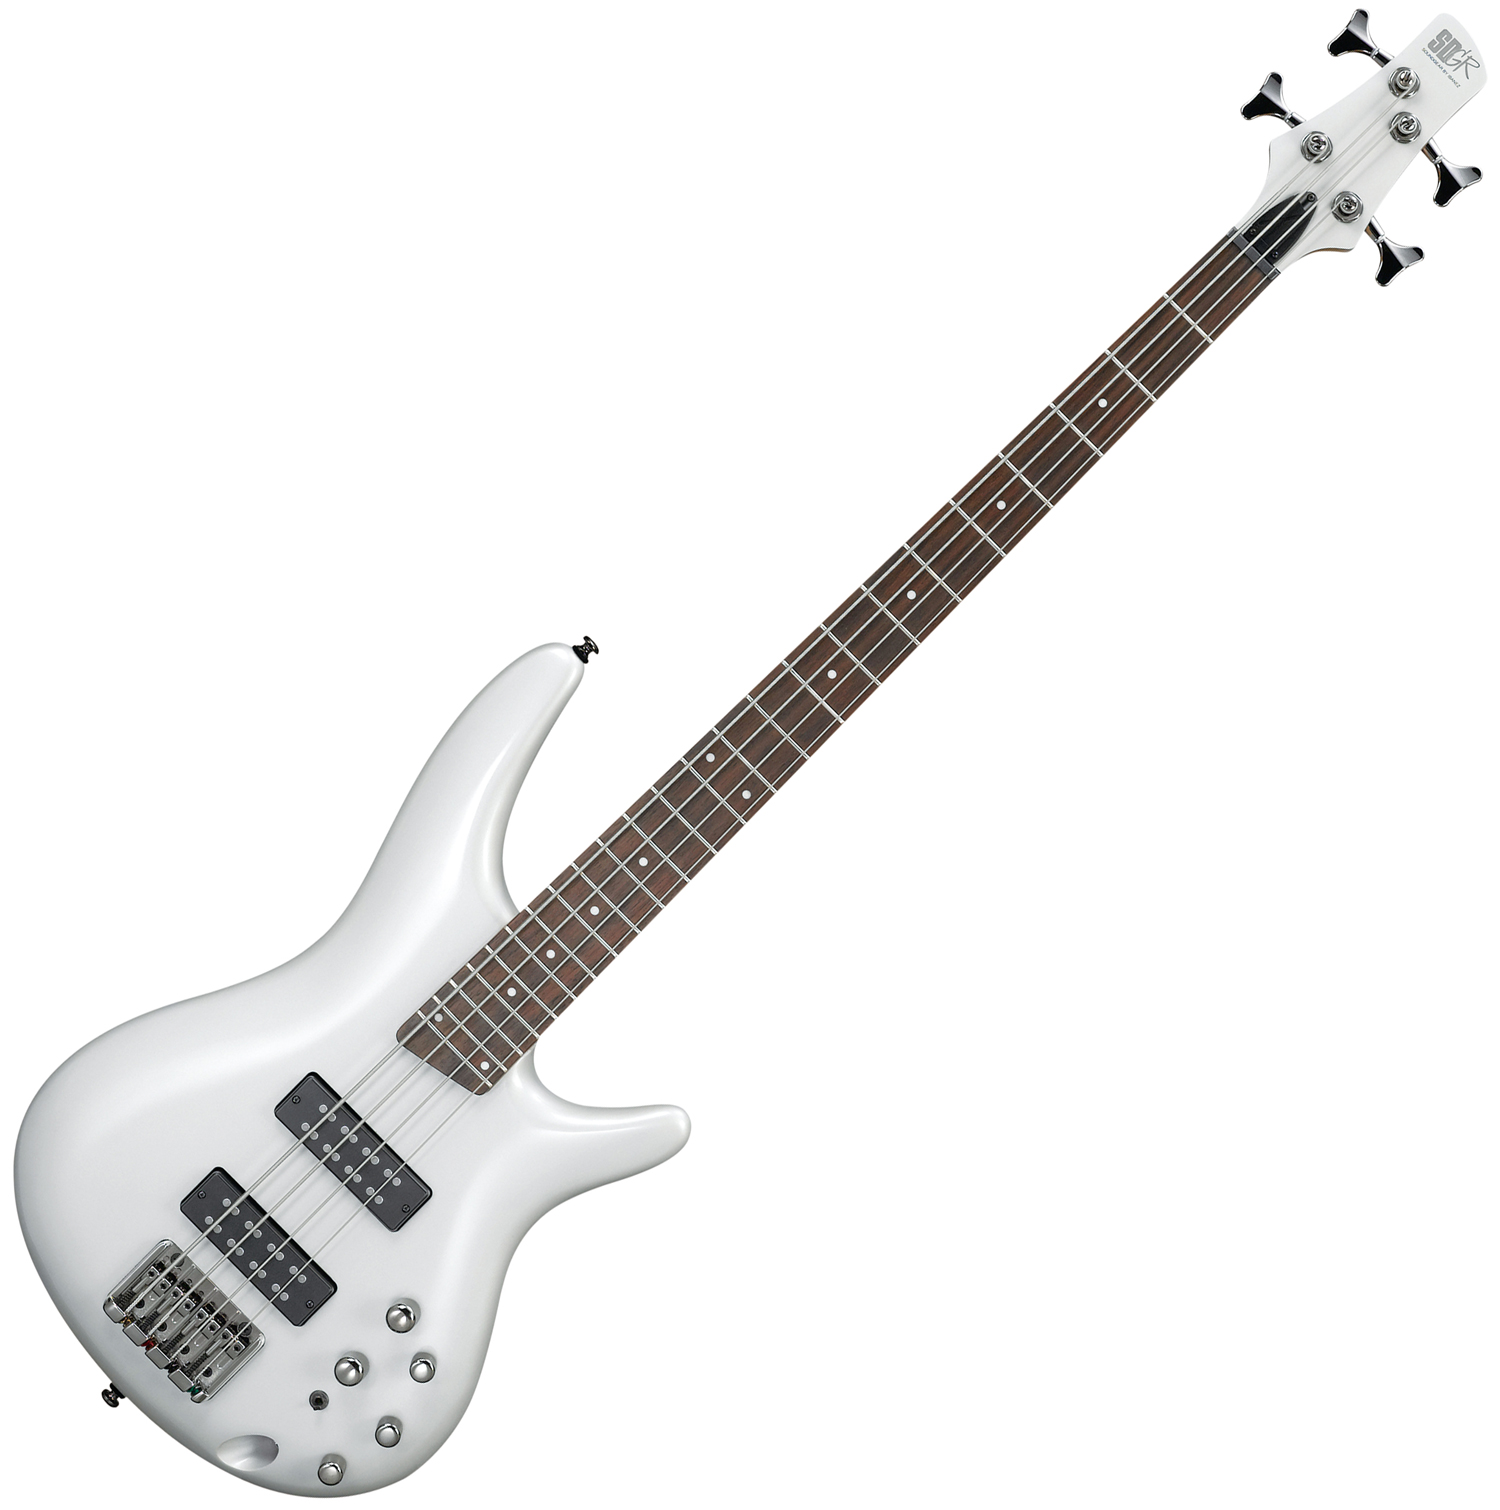 musicworks guitars bass guitars 4 string bass guitars ibanez sr bass guitar pearl white. Black Bedroom Furniture Sets. Home Design Ideas